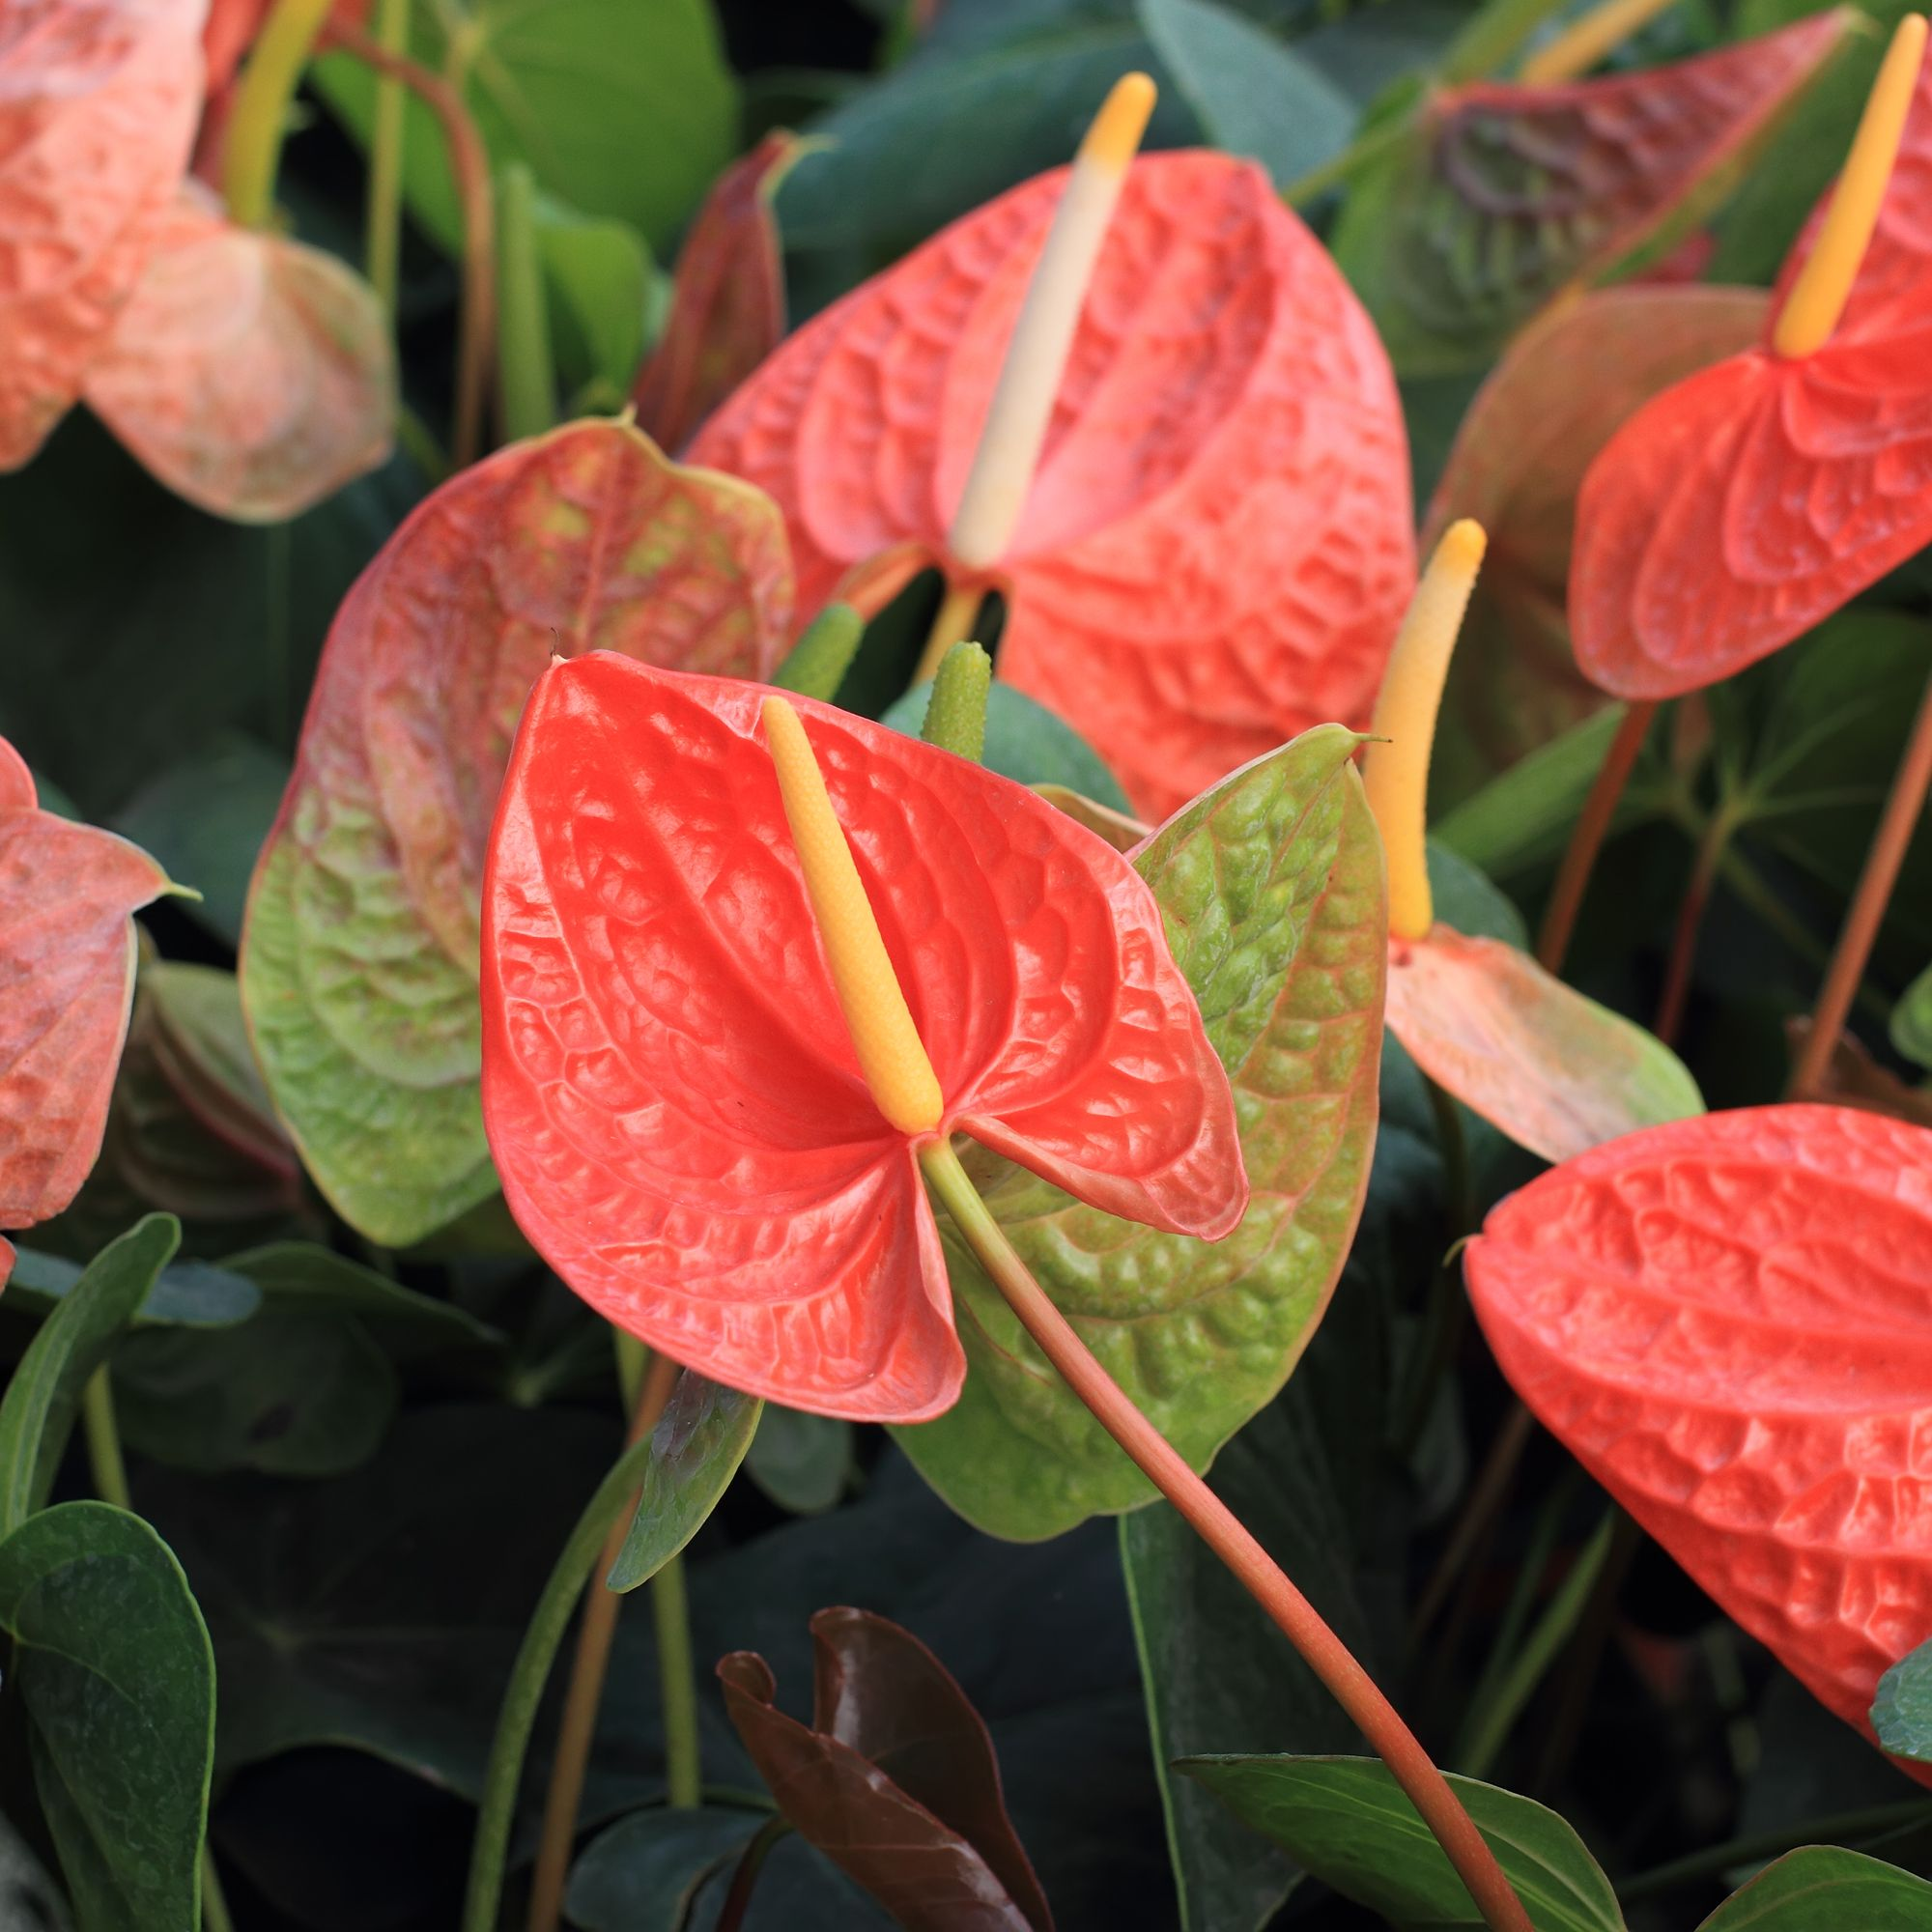 Anthurium Striking Glossy Green Elongated Heart Shaped